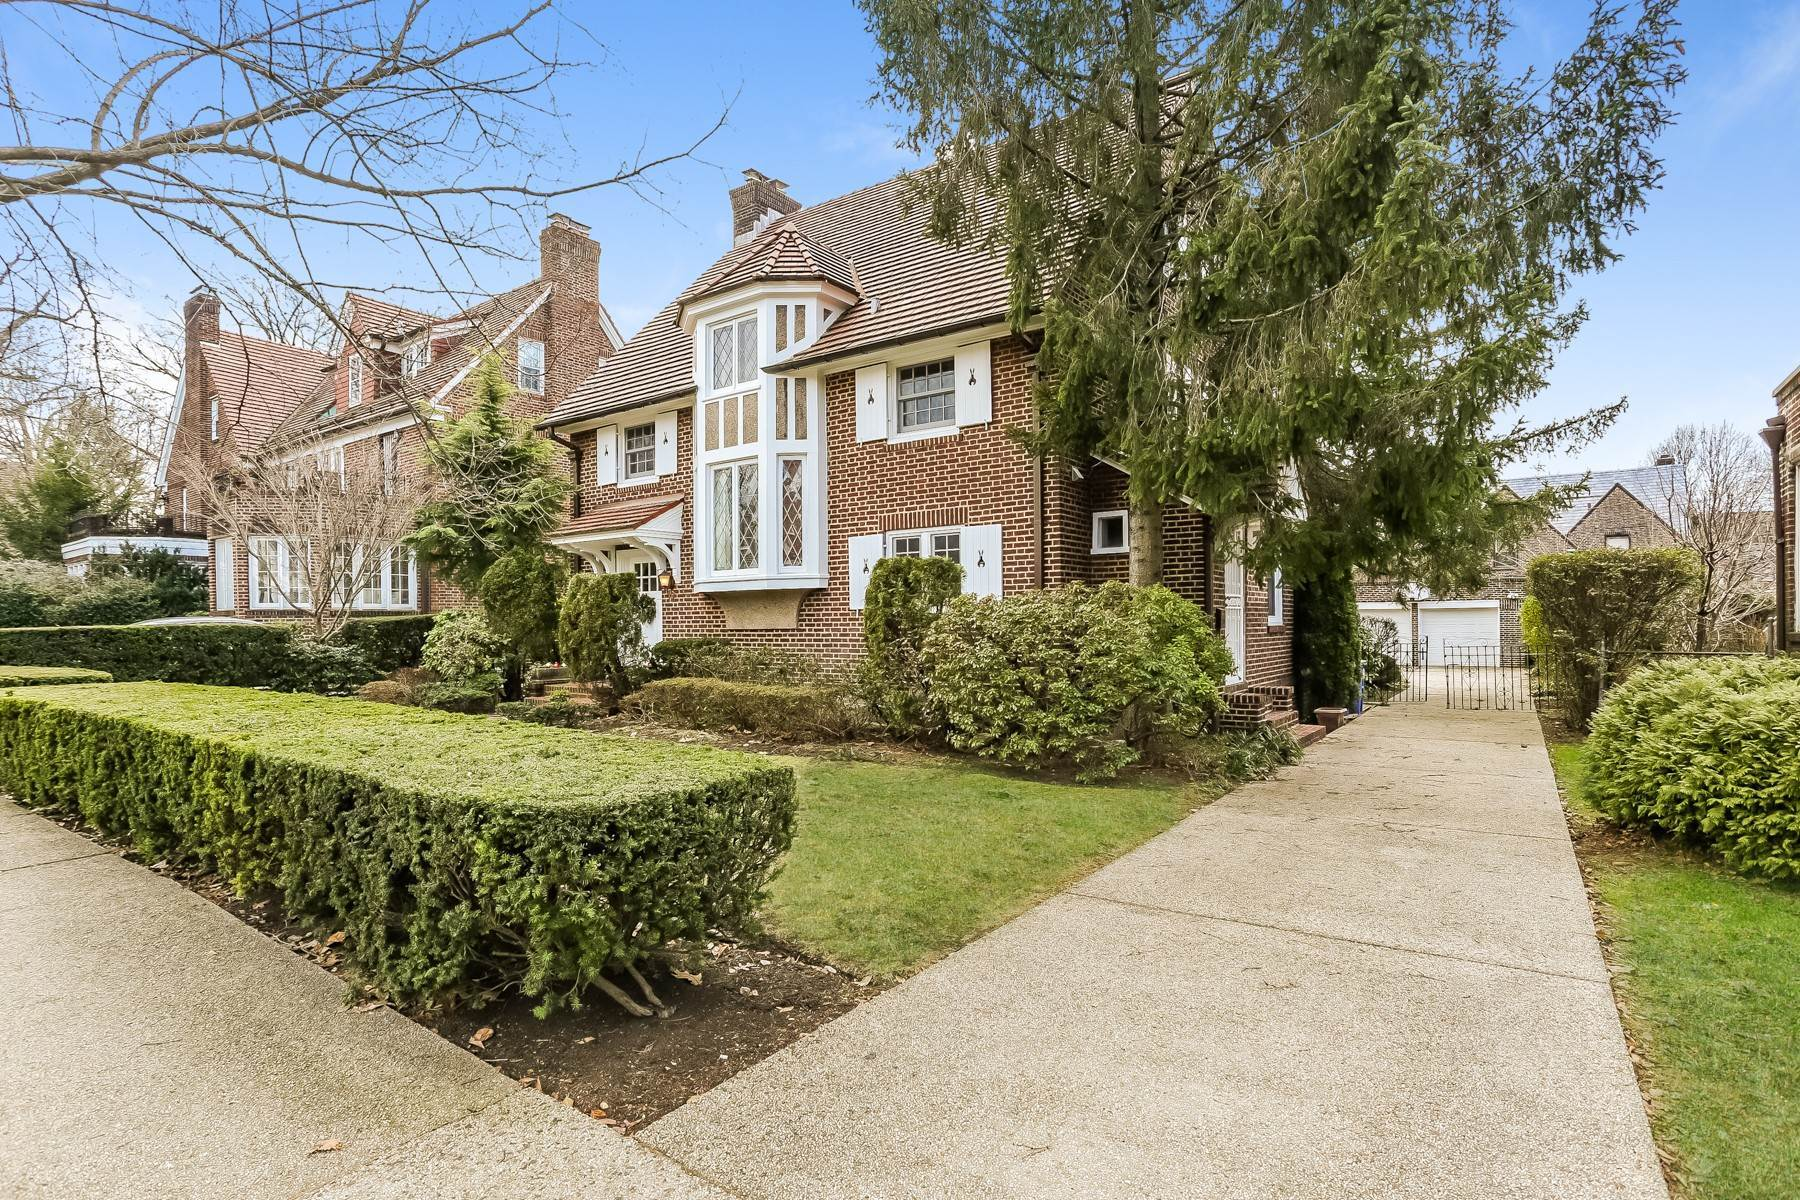 Single Family Homes por un Venta en 'SPACIOUS STORYBOOK HOME, FULLY RENOVATED' 19 Groton Street, Forest Hills Gardens, Forest Hills, Nueva York 11375 Estados Unidos